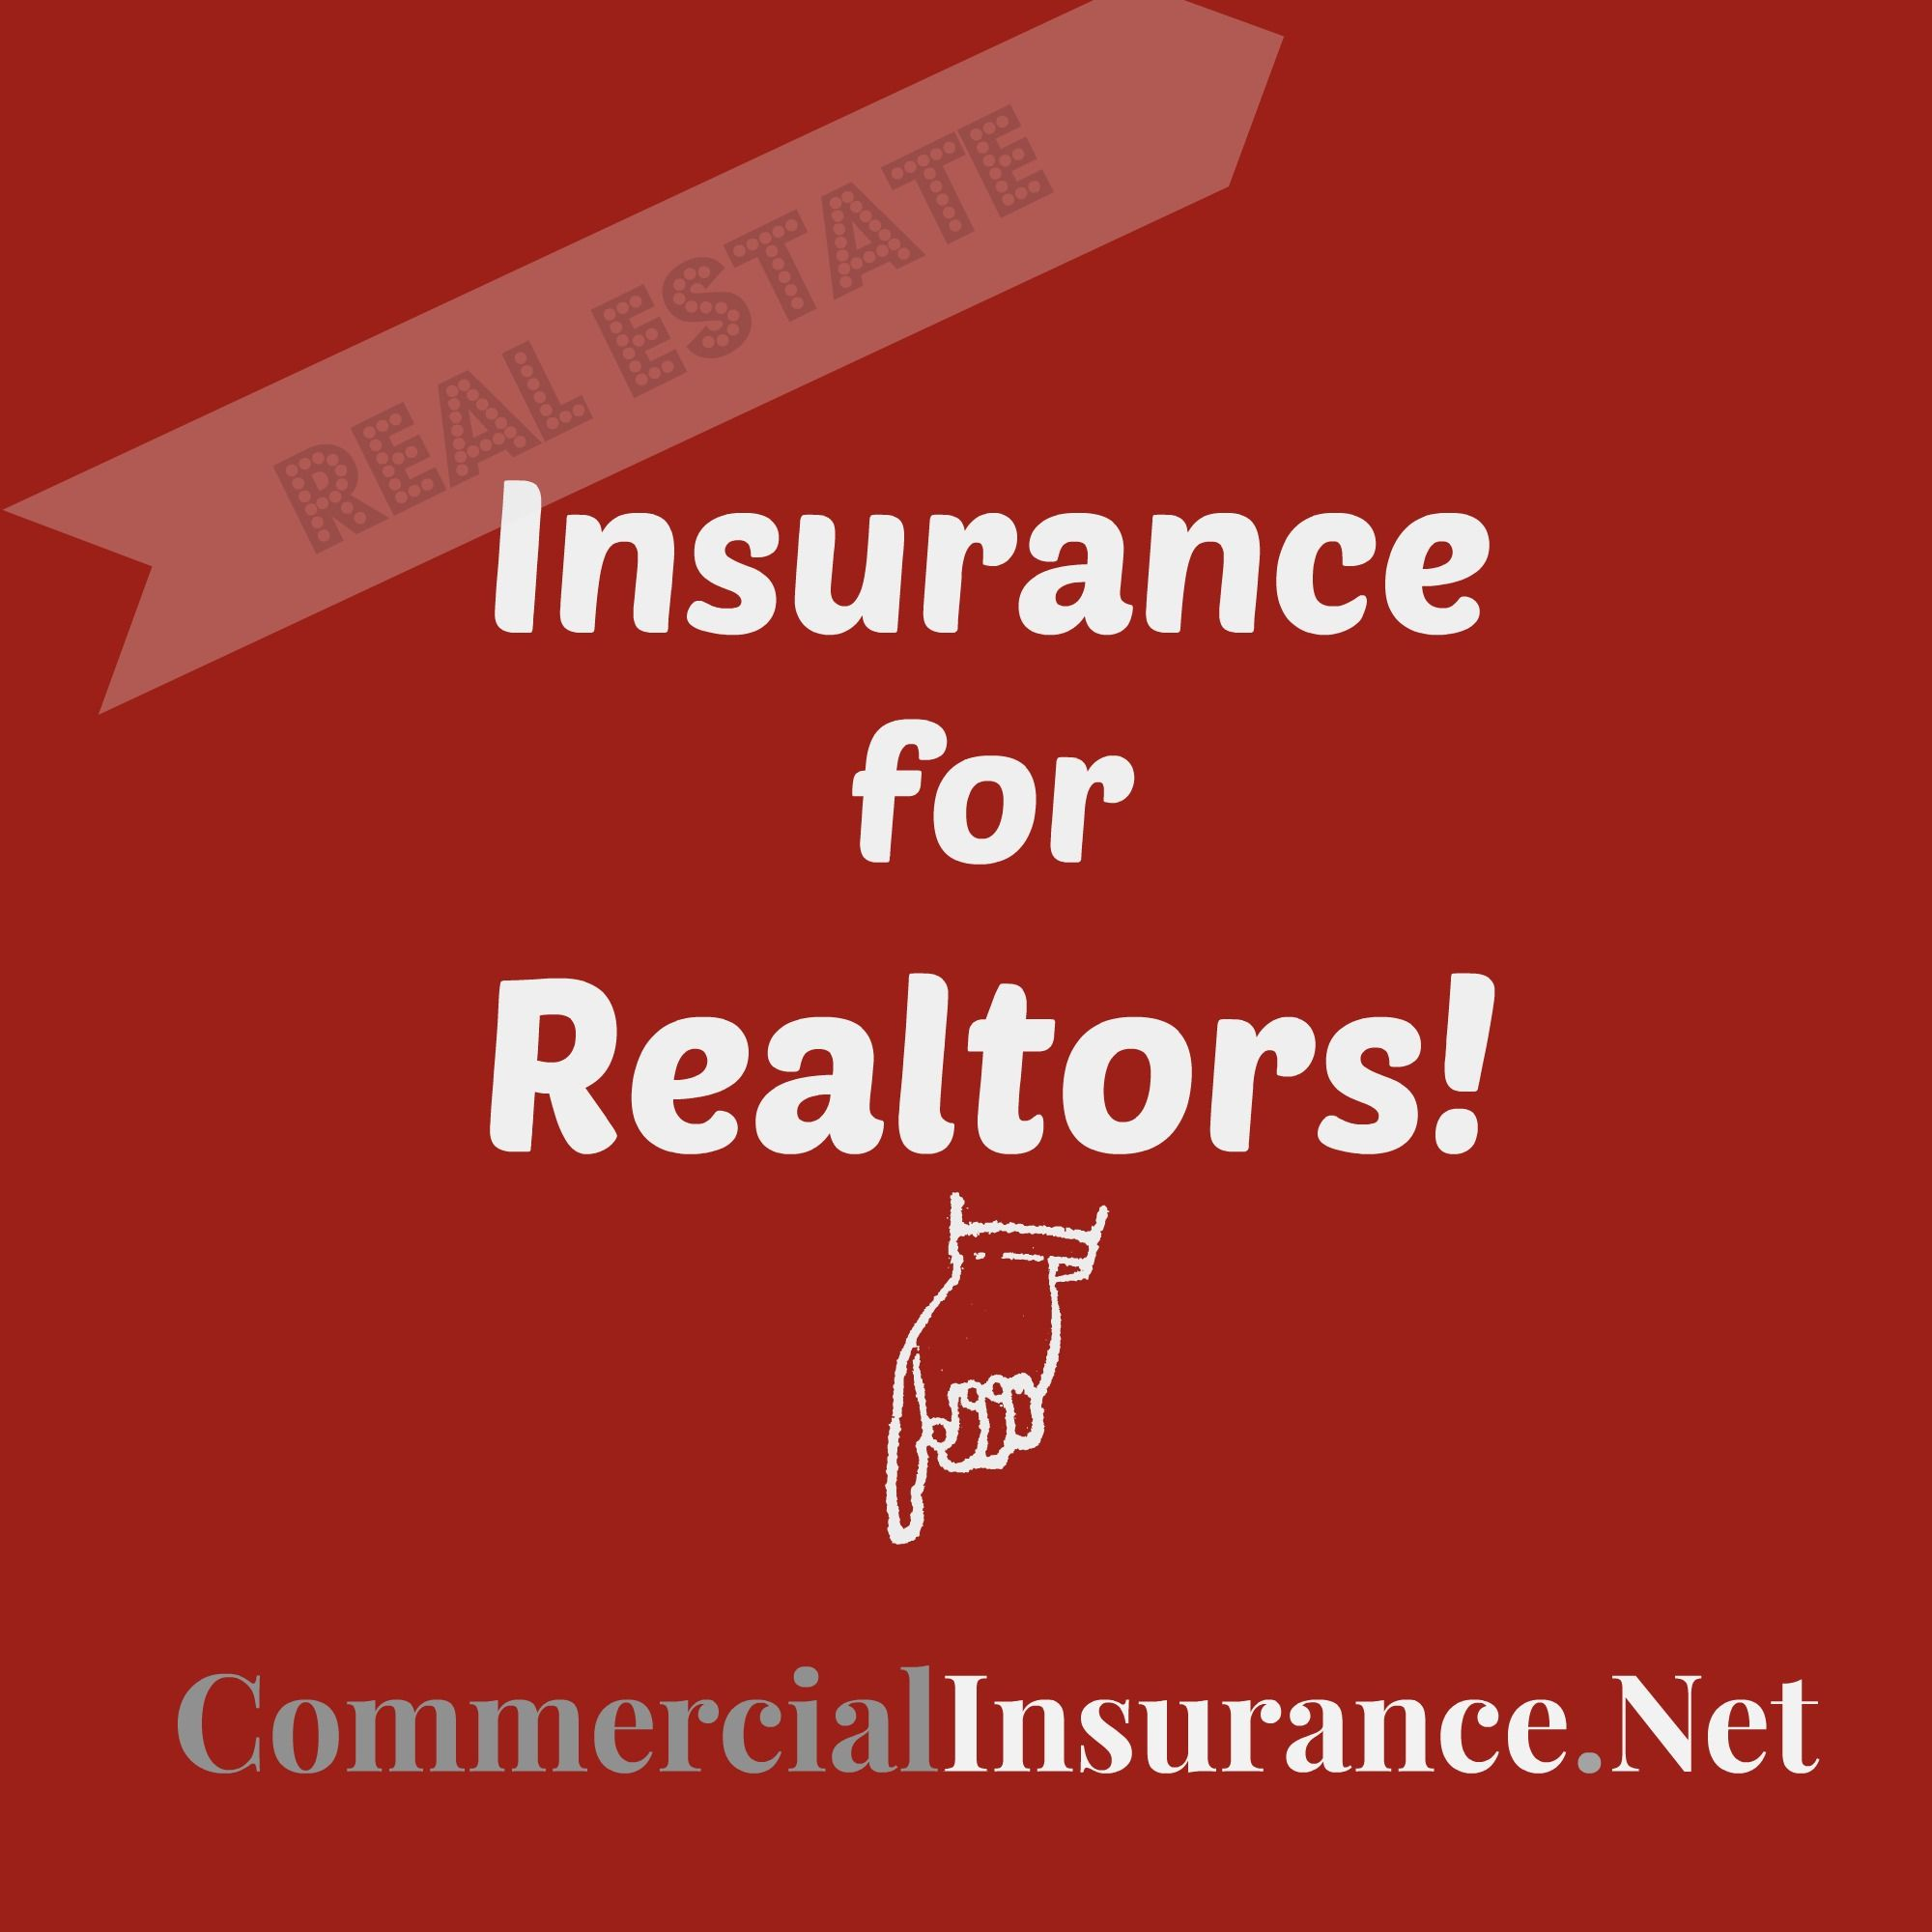 Let Us Help You Protect Your Real Estate Business Realtor